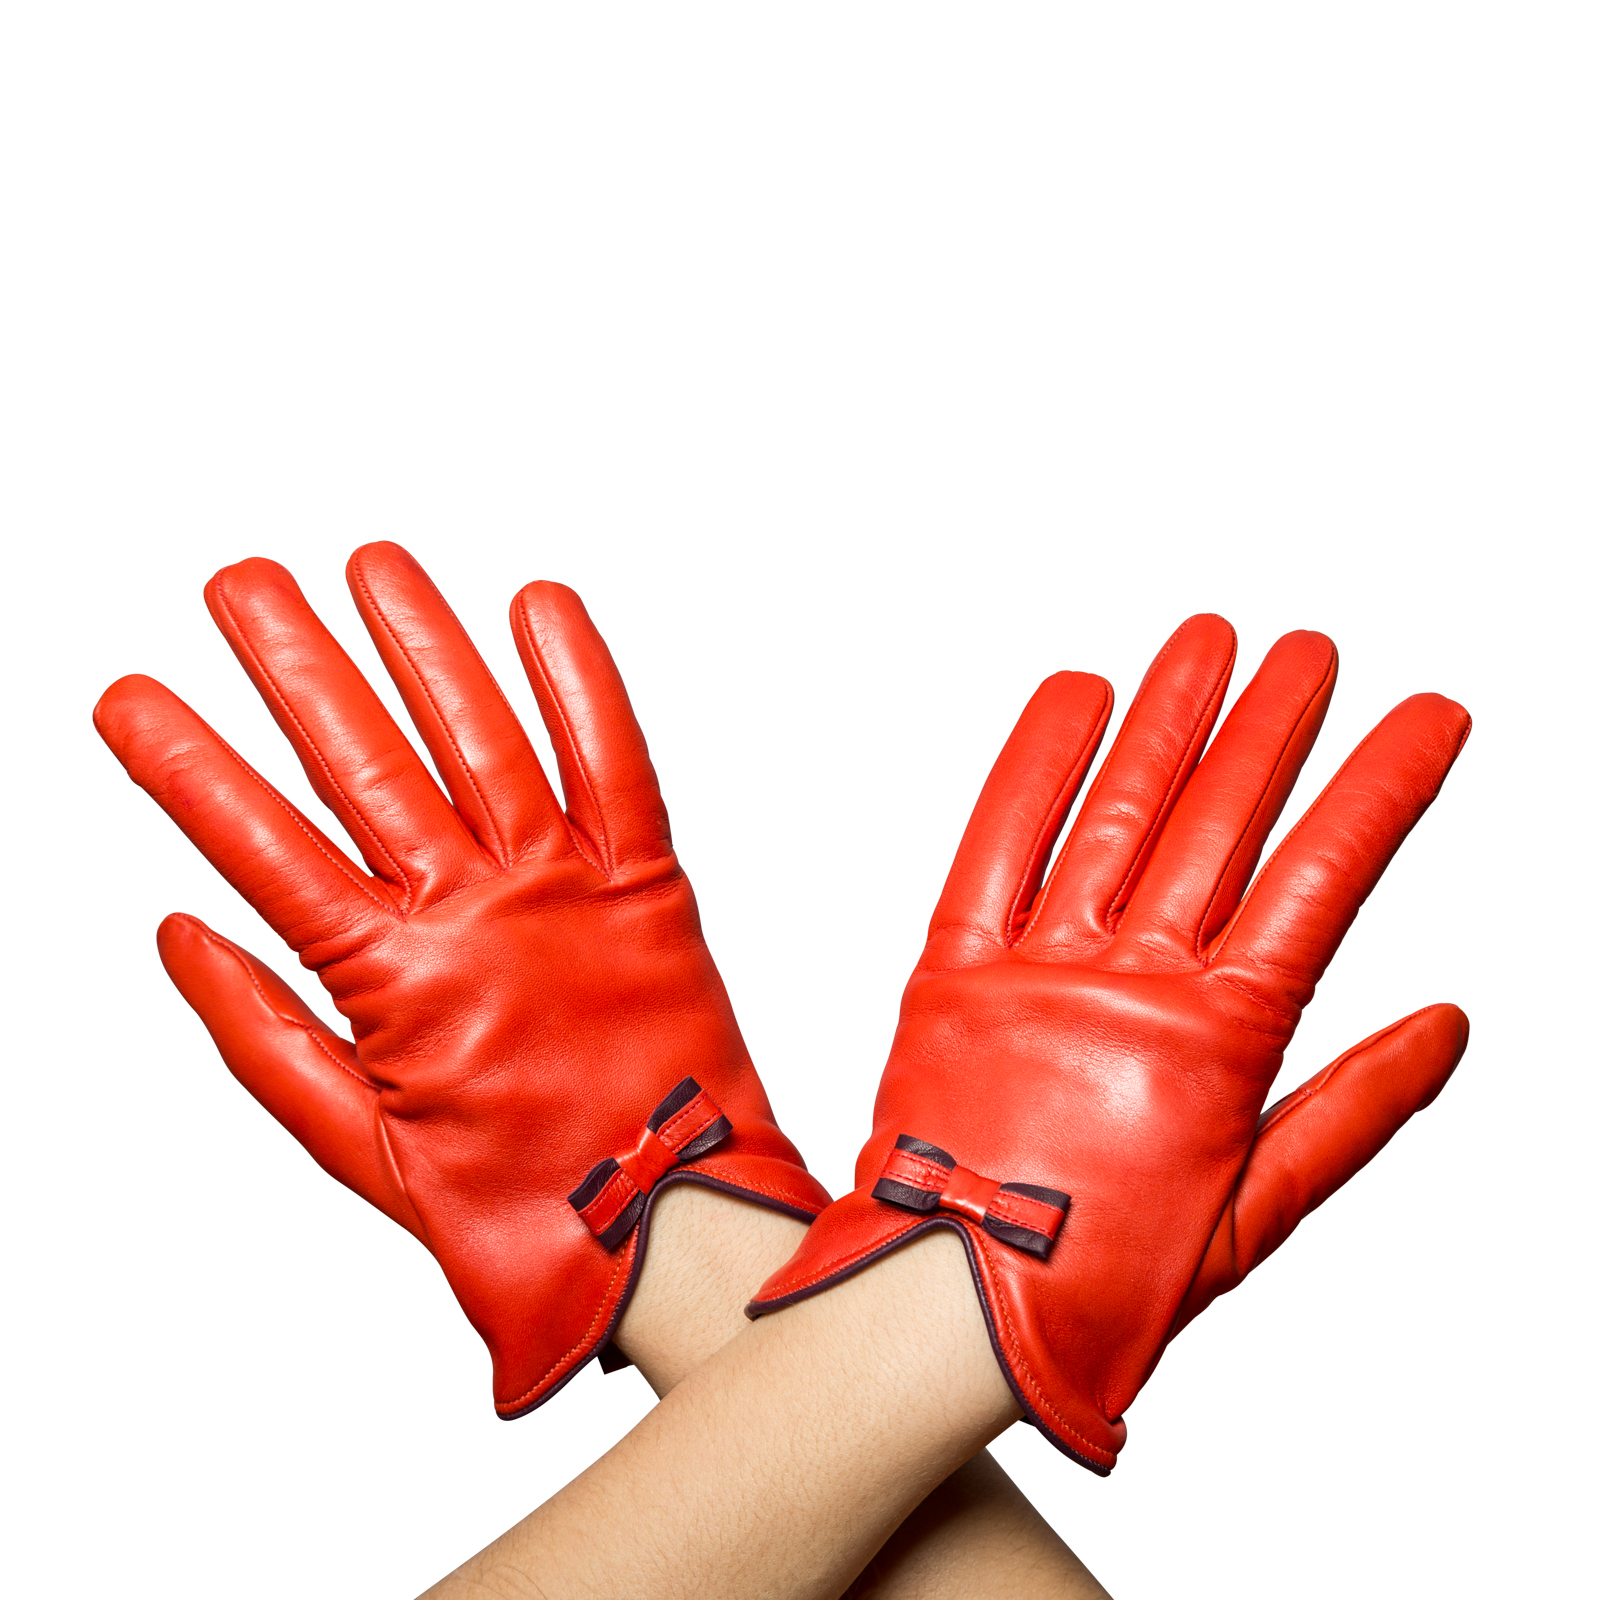 Women's Leather Gloves Orange With Red Bow - Beau Gant